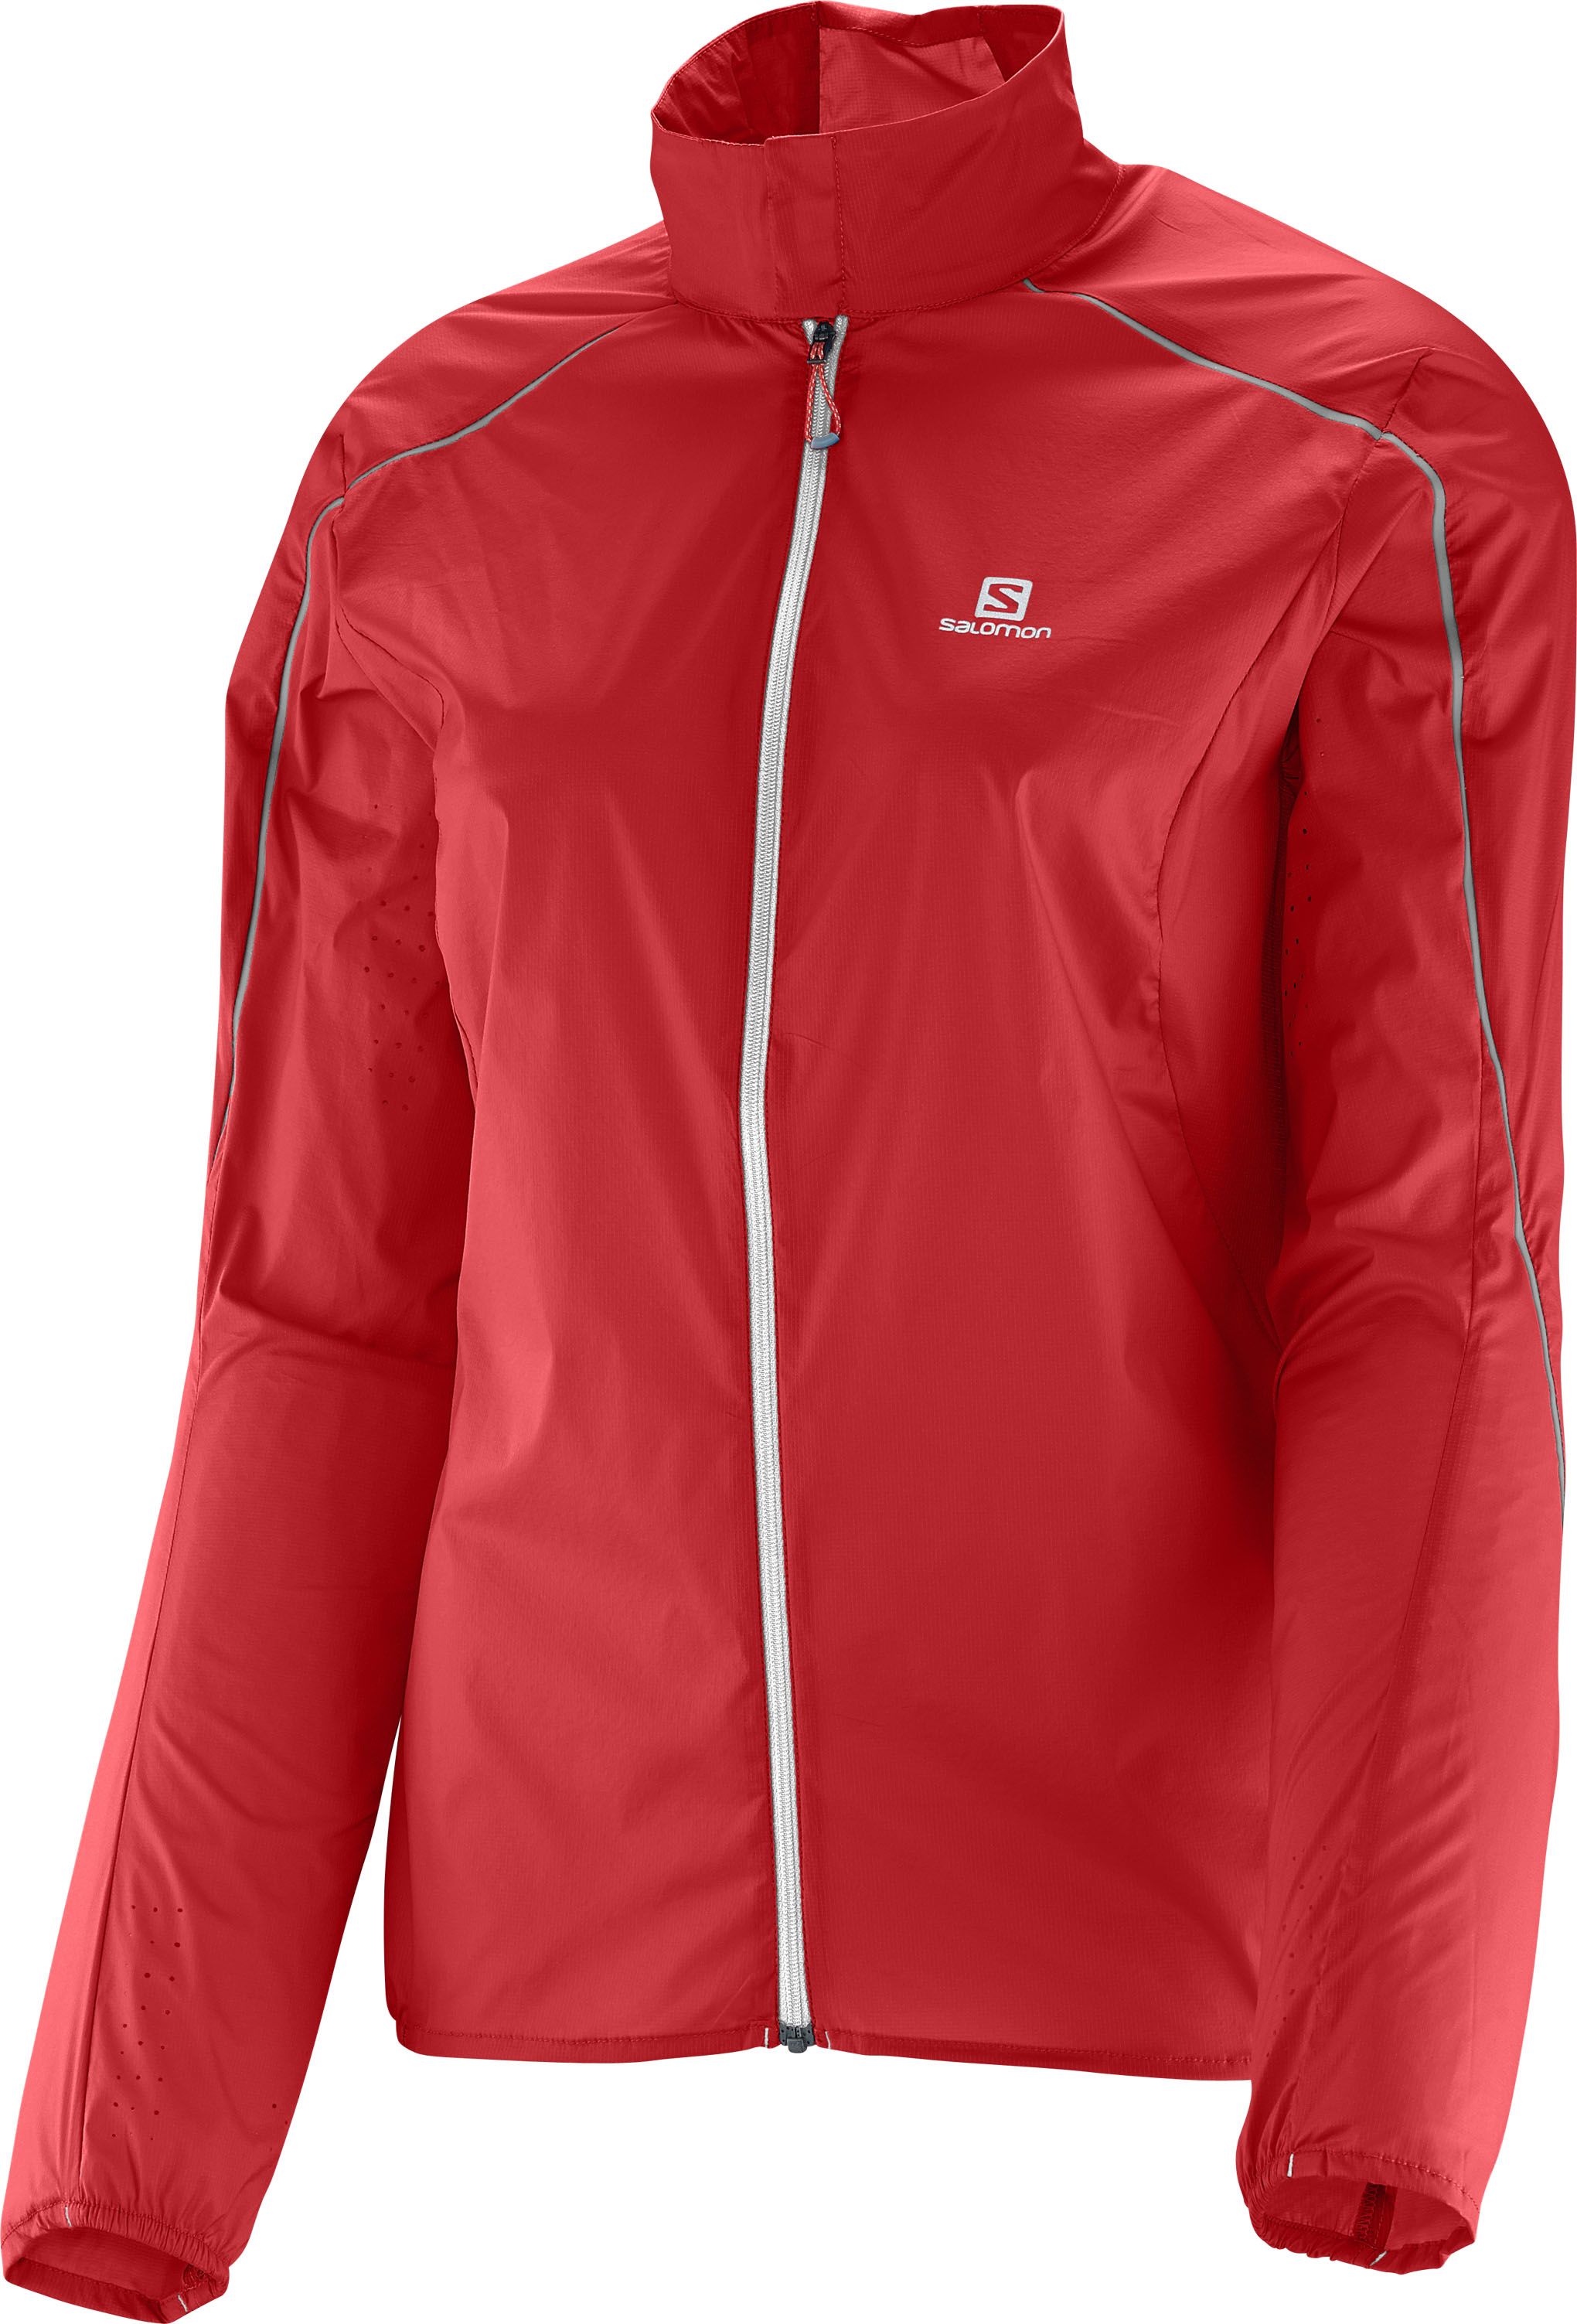 Salomon S-Lab Light Jacket W 370836 červená M